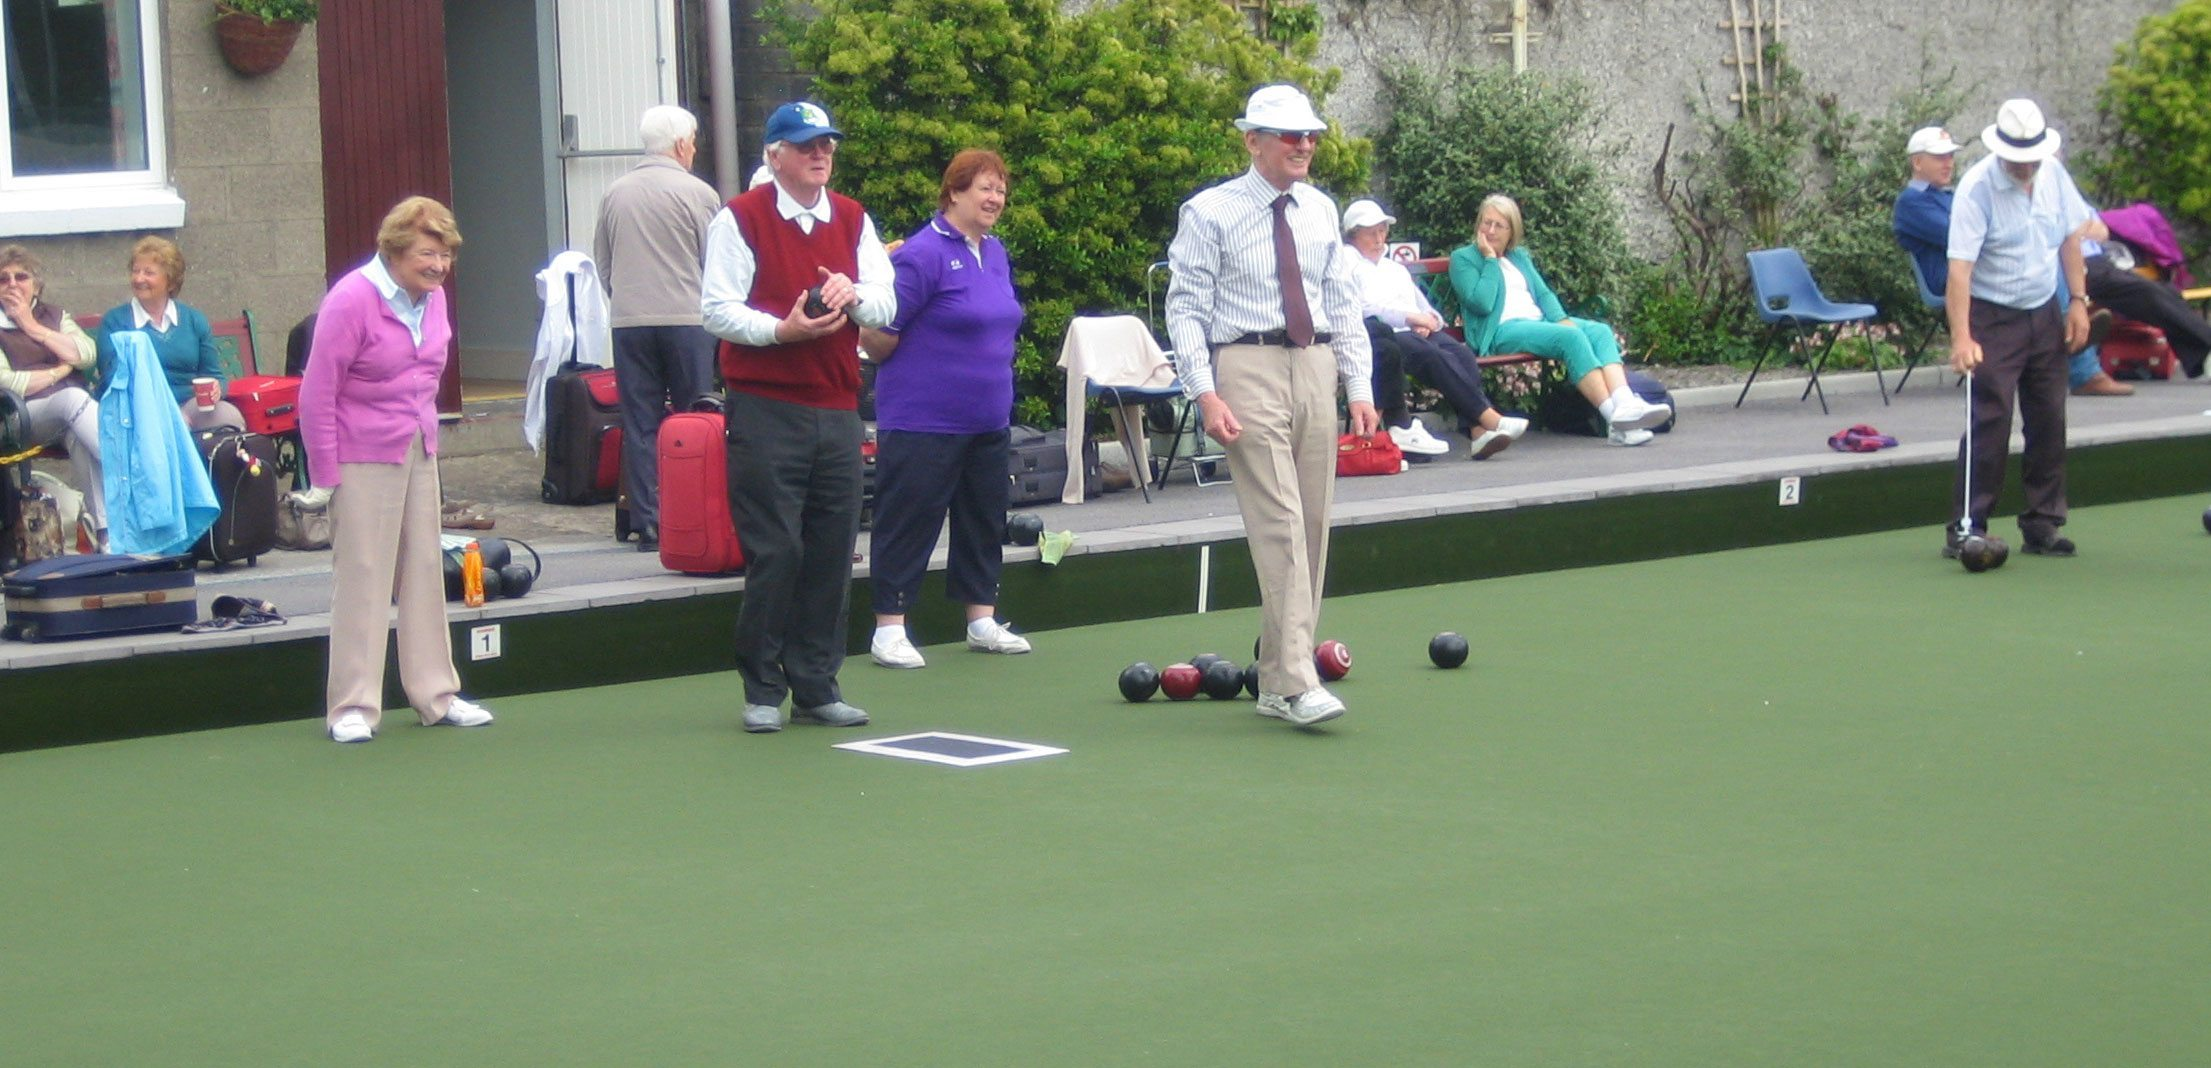 Leinster Bowling Club Slider6